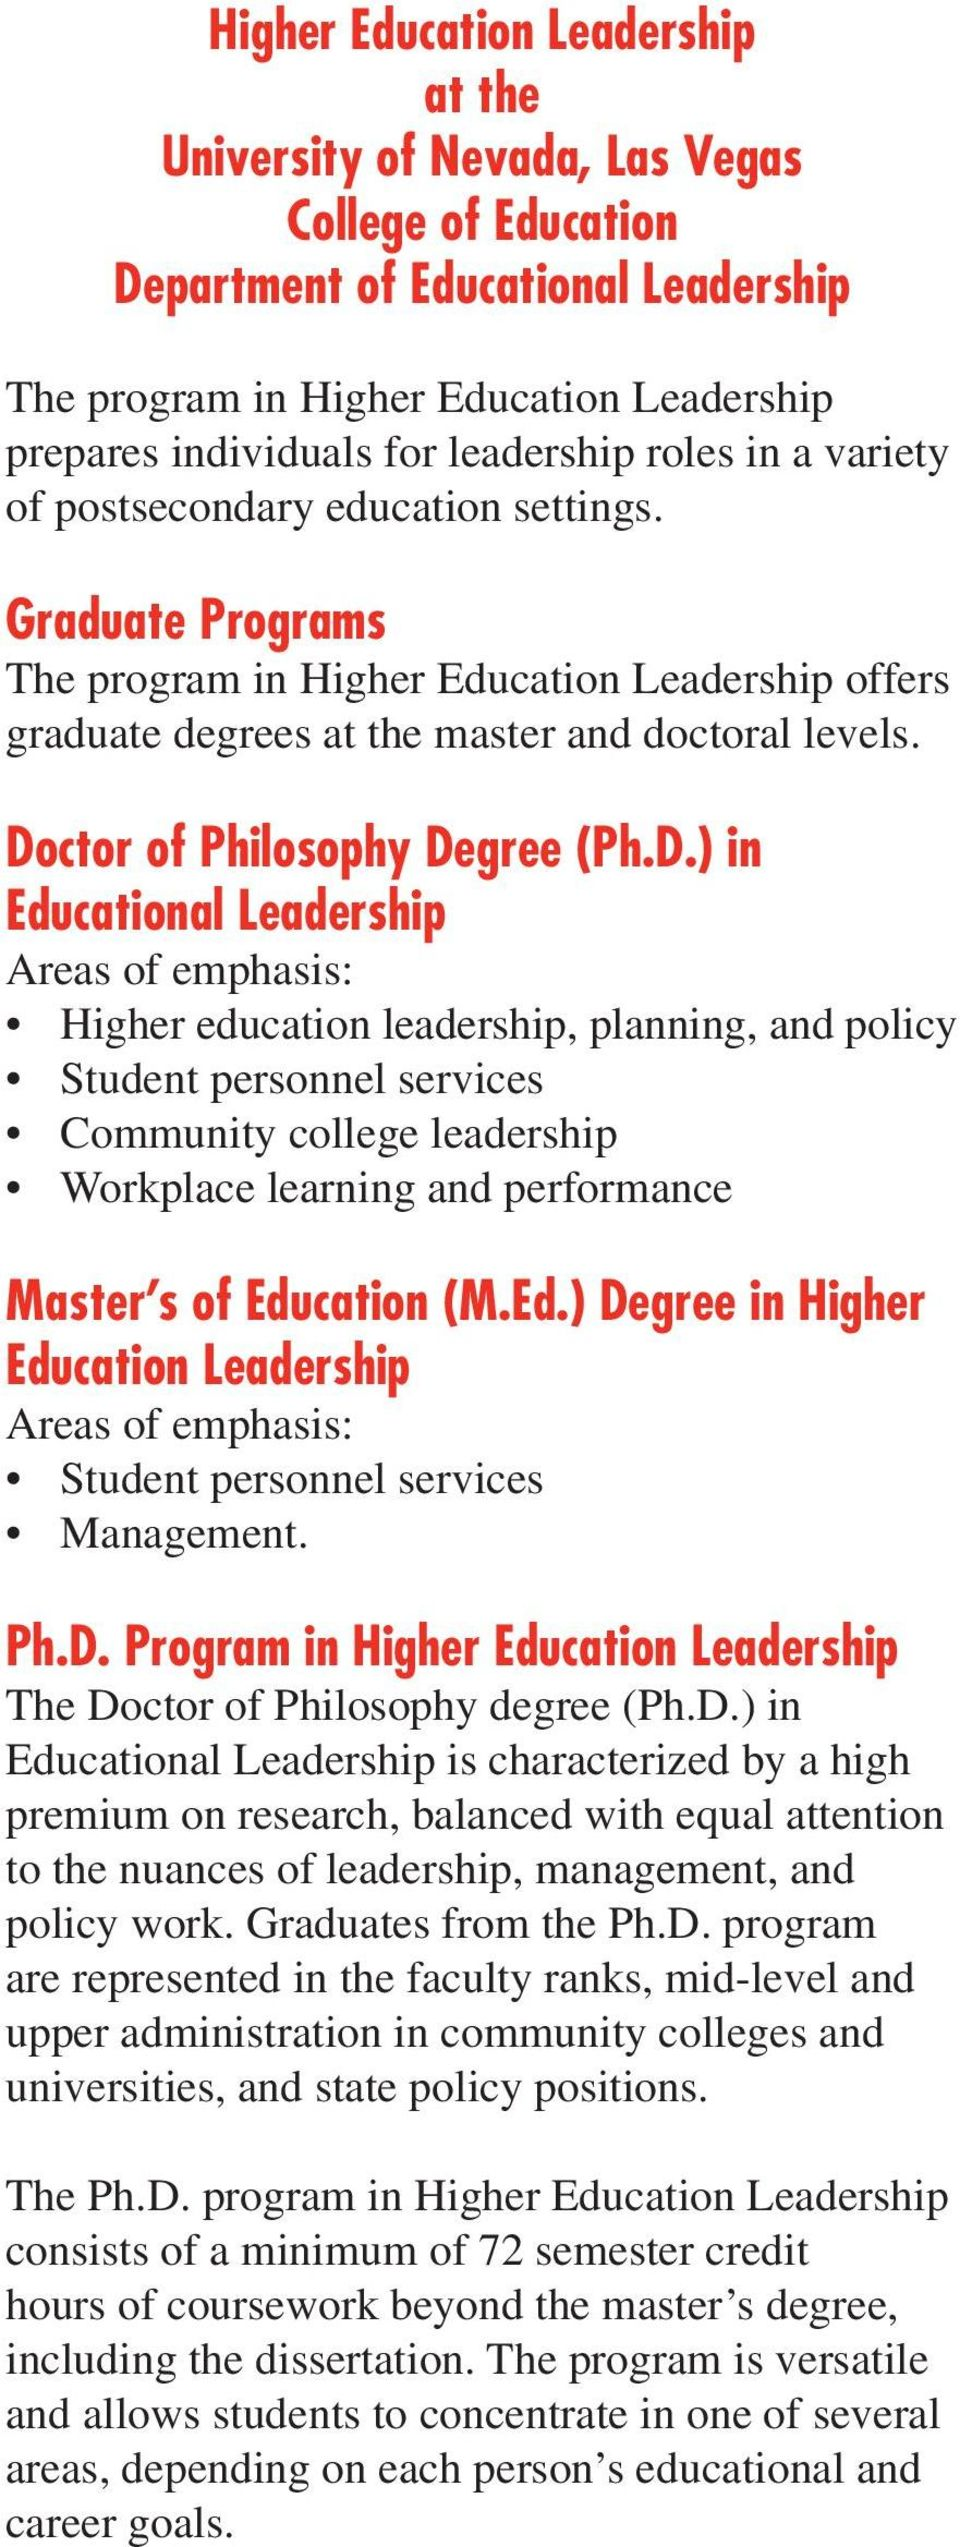 Doctor of Philosophy Degree (Ph.D.) in Educational Leadership Areas of emphasis: Higher education leadership, planning, and policy Student personnel services Community college leadership Workplace